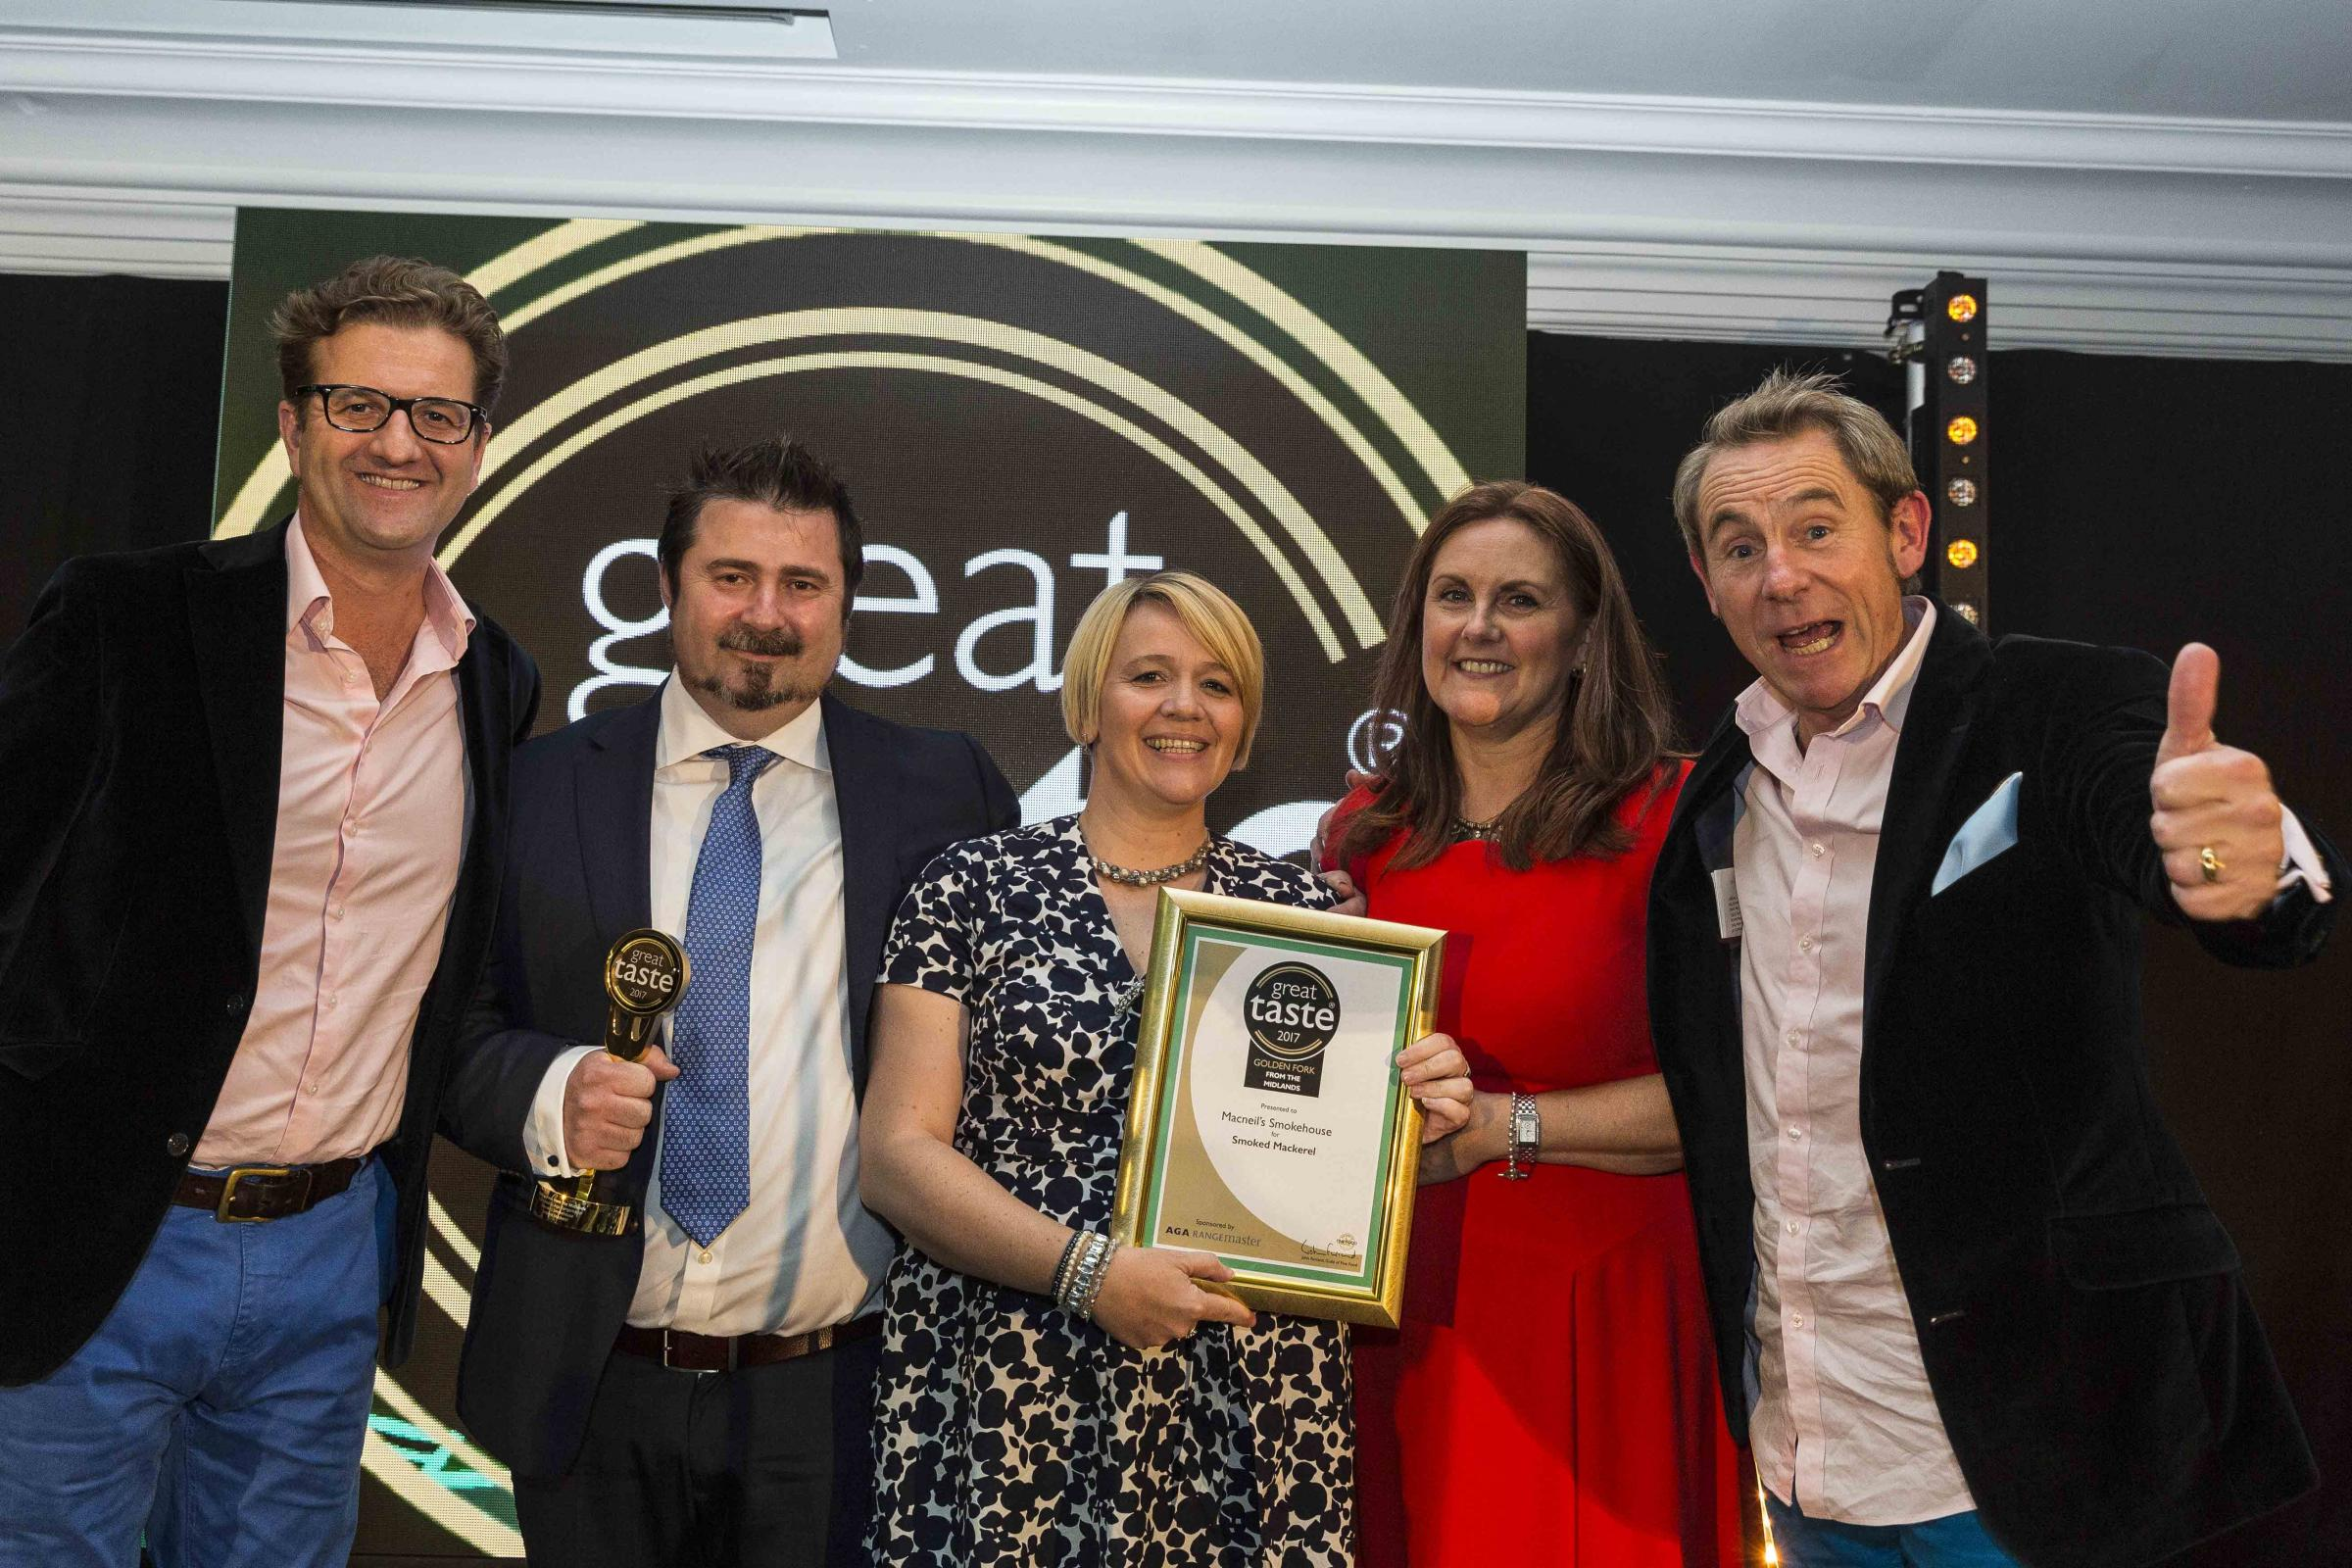 SMOKING: Golden Fork from the Midlands winners.John Farrand from the Guild of Fine Food, Tony and Bee Macneil from Macneil's Smokehouse, Kathryn Lowe from Aga Rangemaster